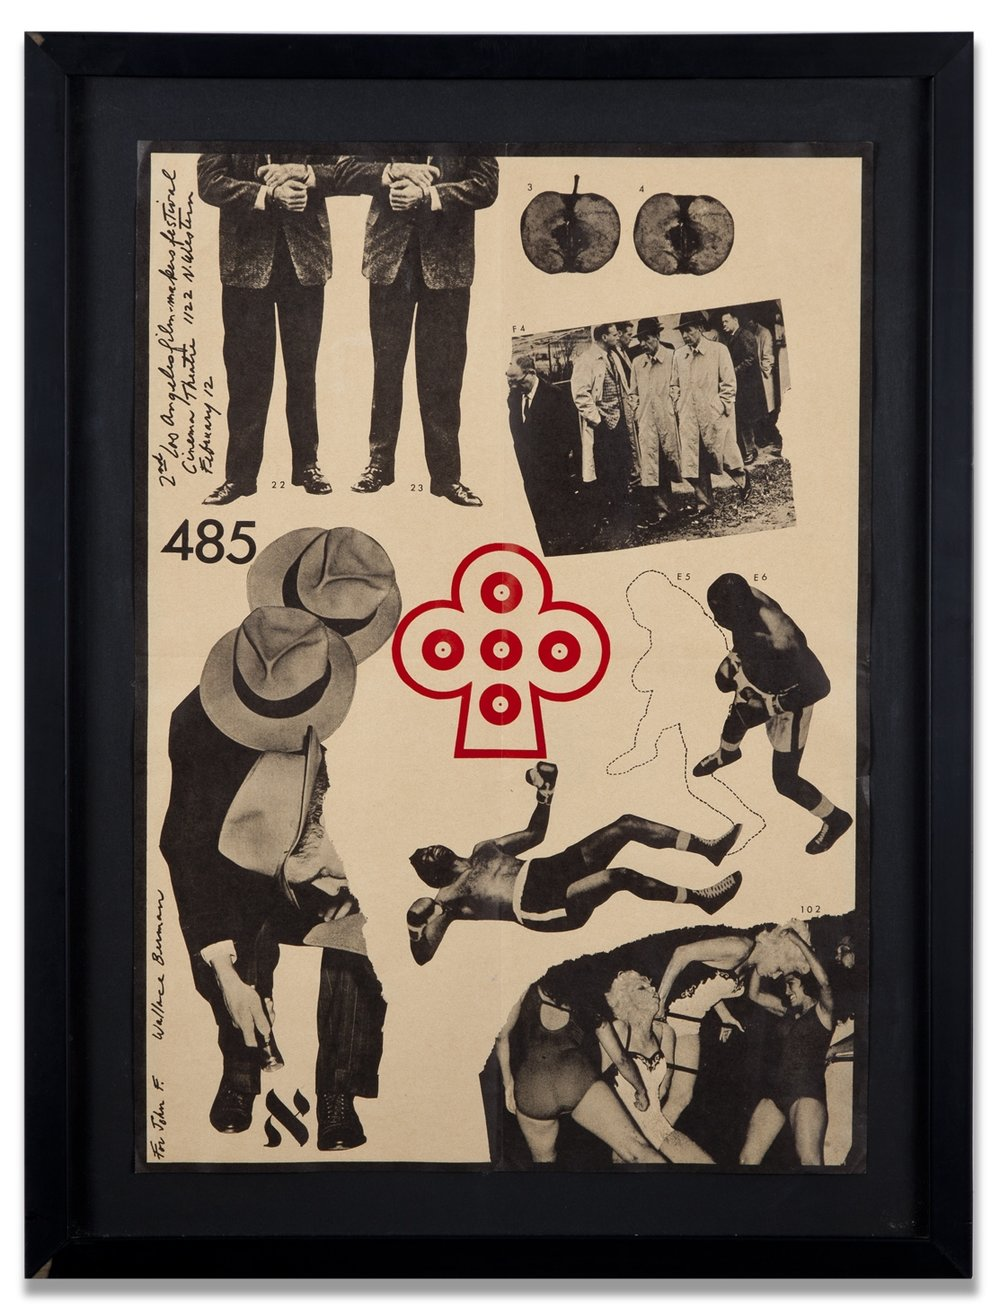 Wallace Berman,  Untitled (2nd Annual LA Filmmakers Festival) , 1963, poster, 17 1/2 x 12 inches